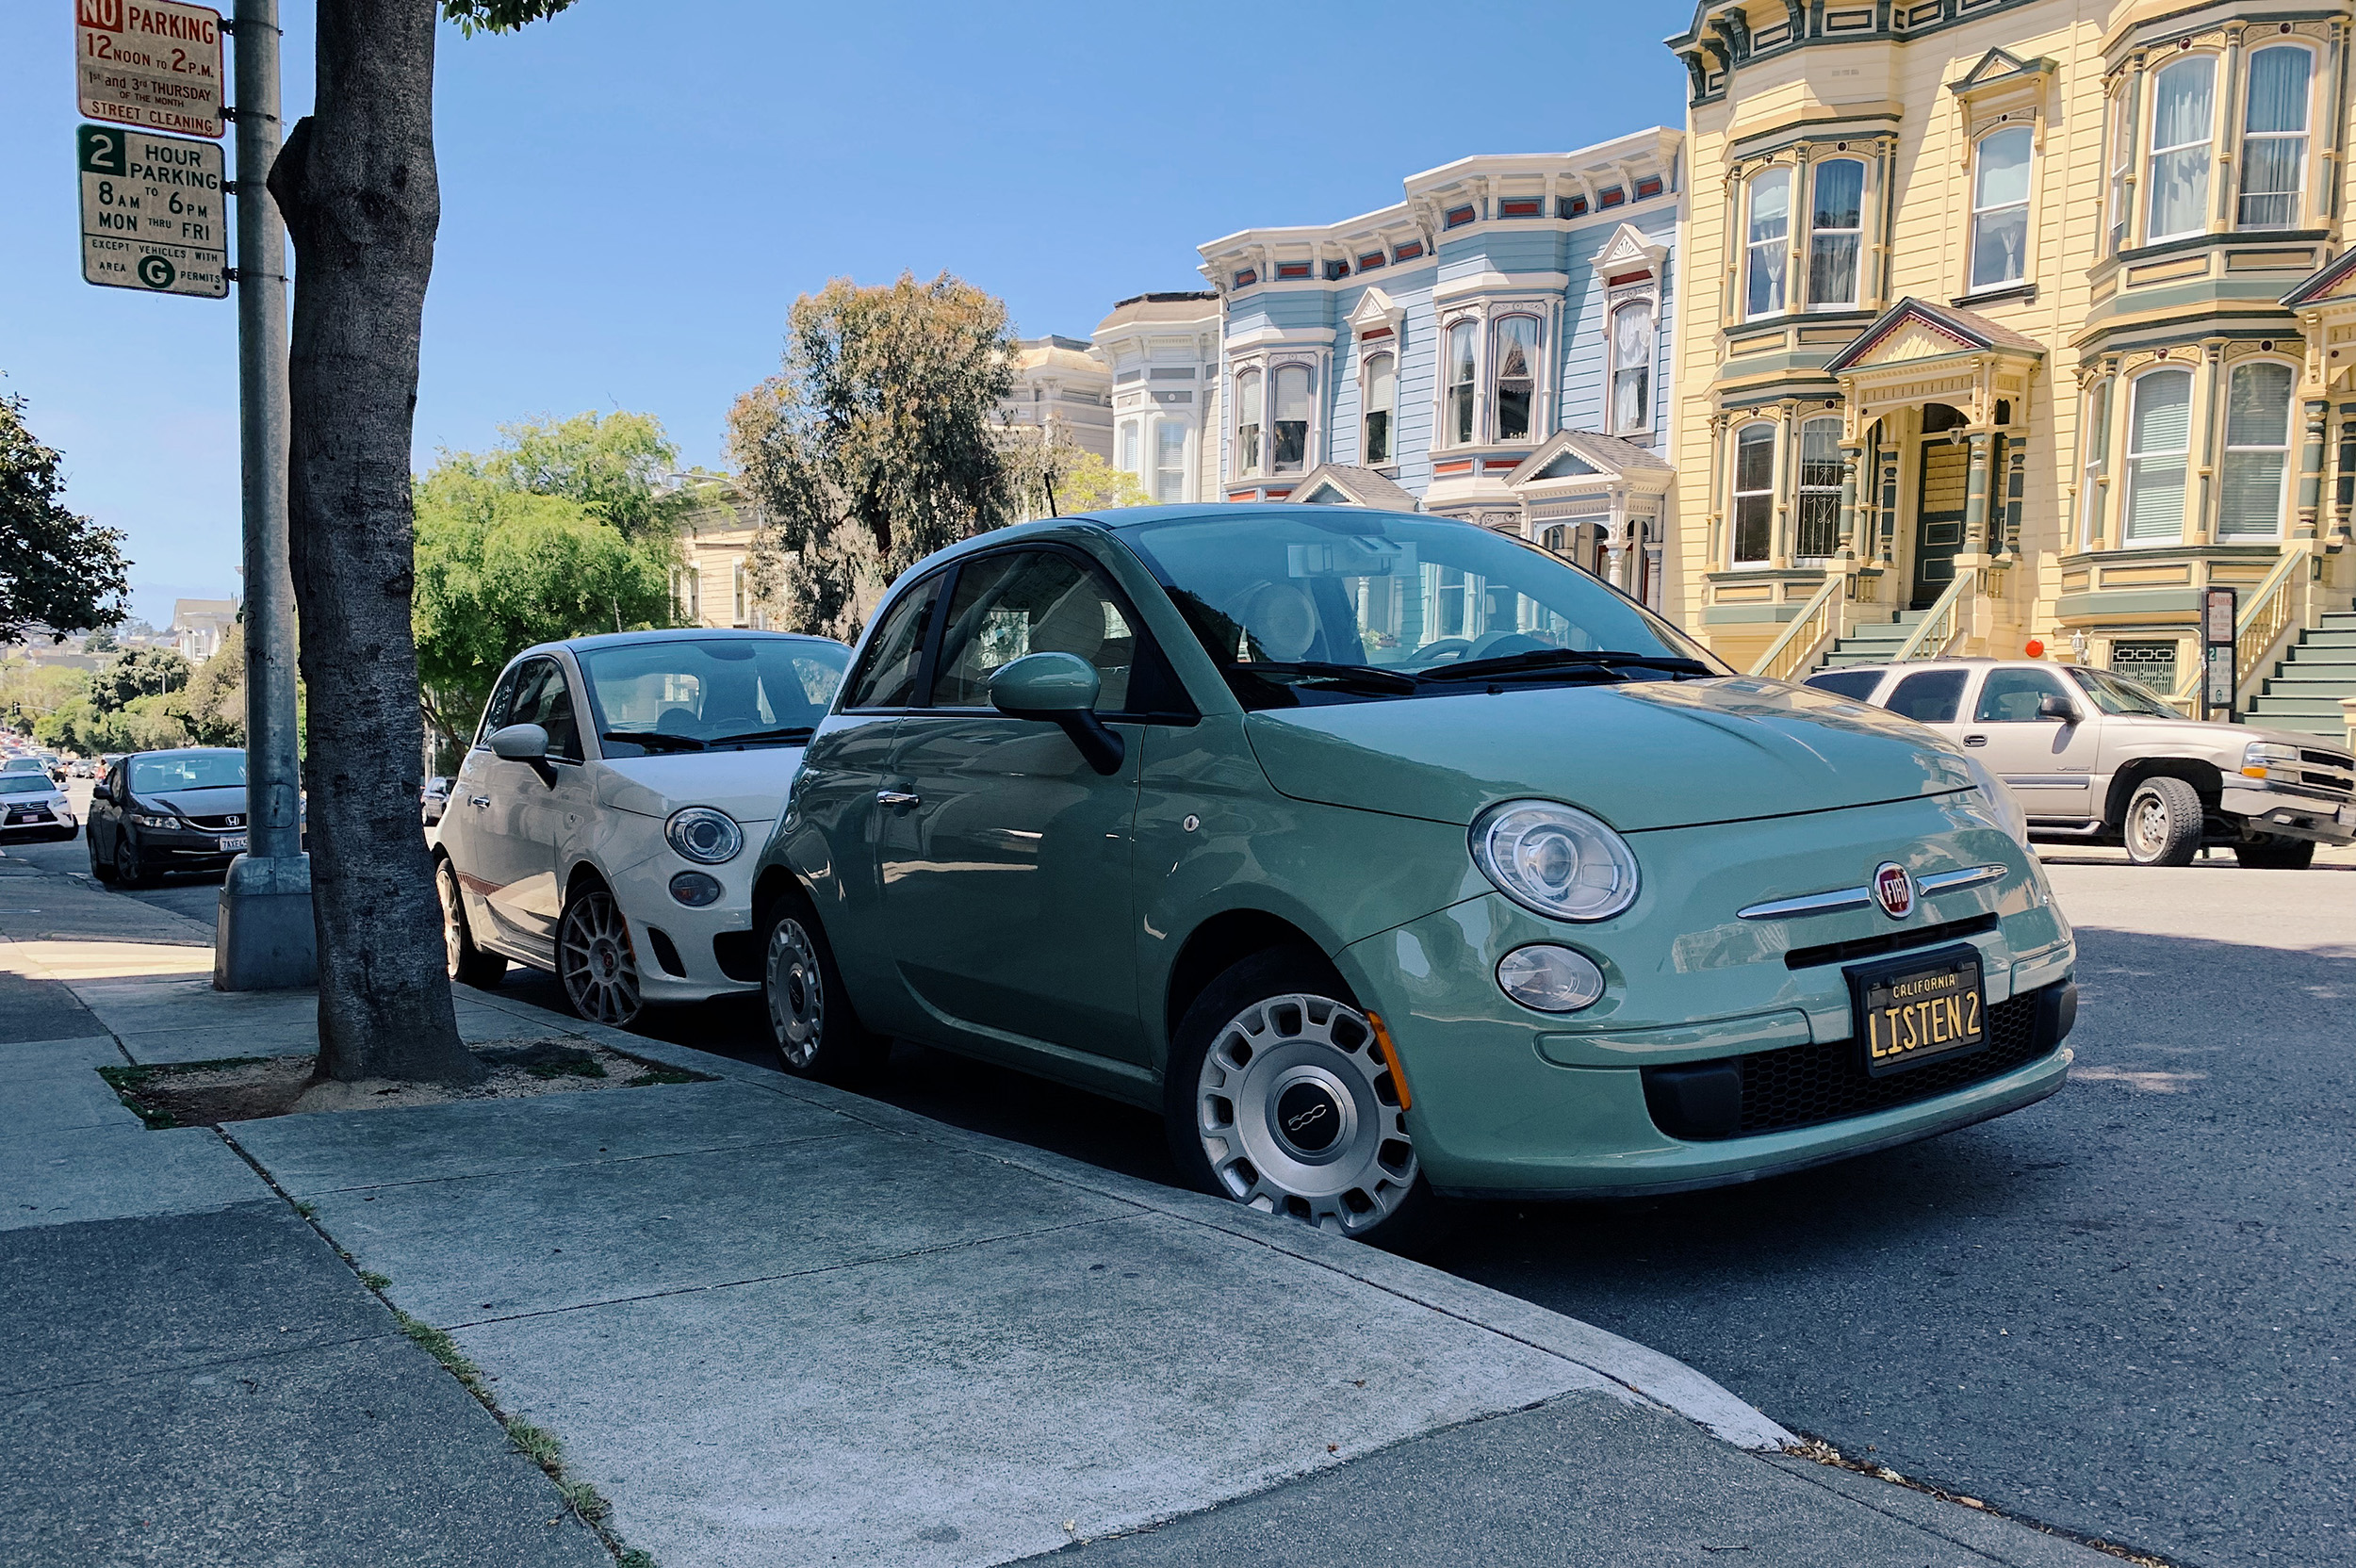 This is brilliant: two Fiat 500s fitting in one San Francisco street parking spot.